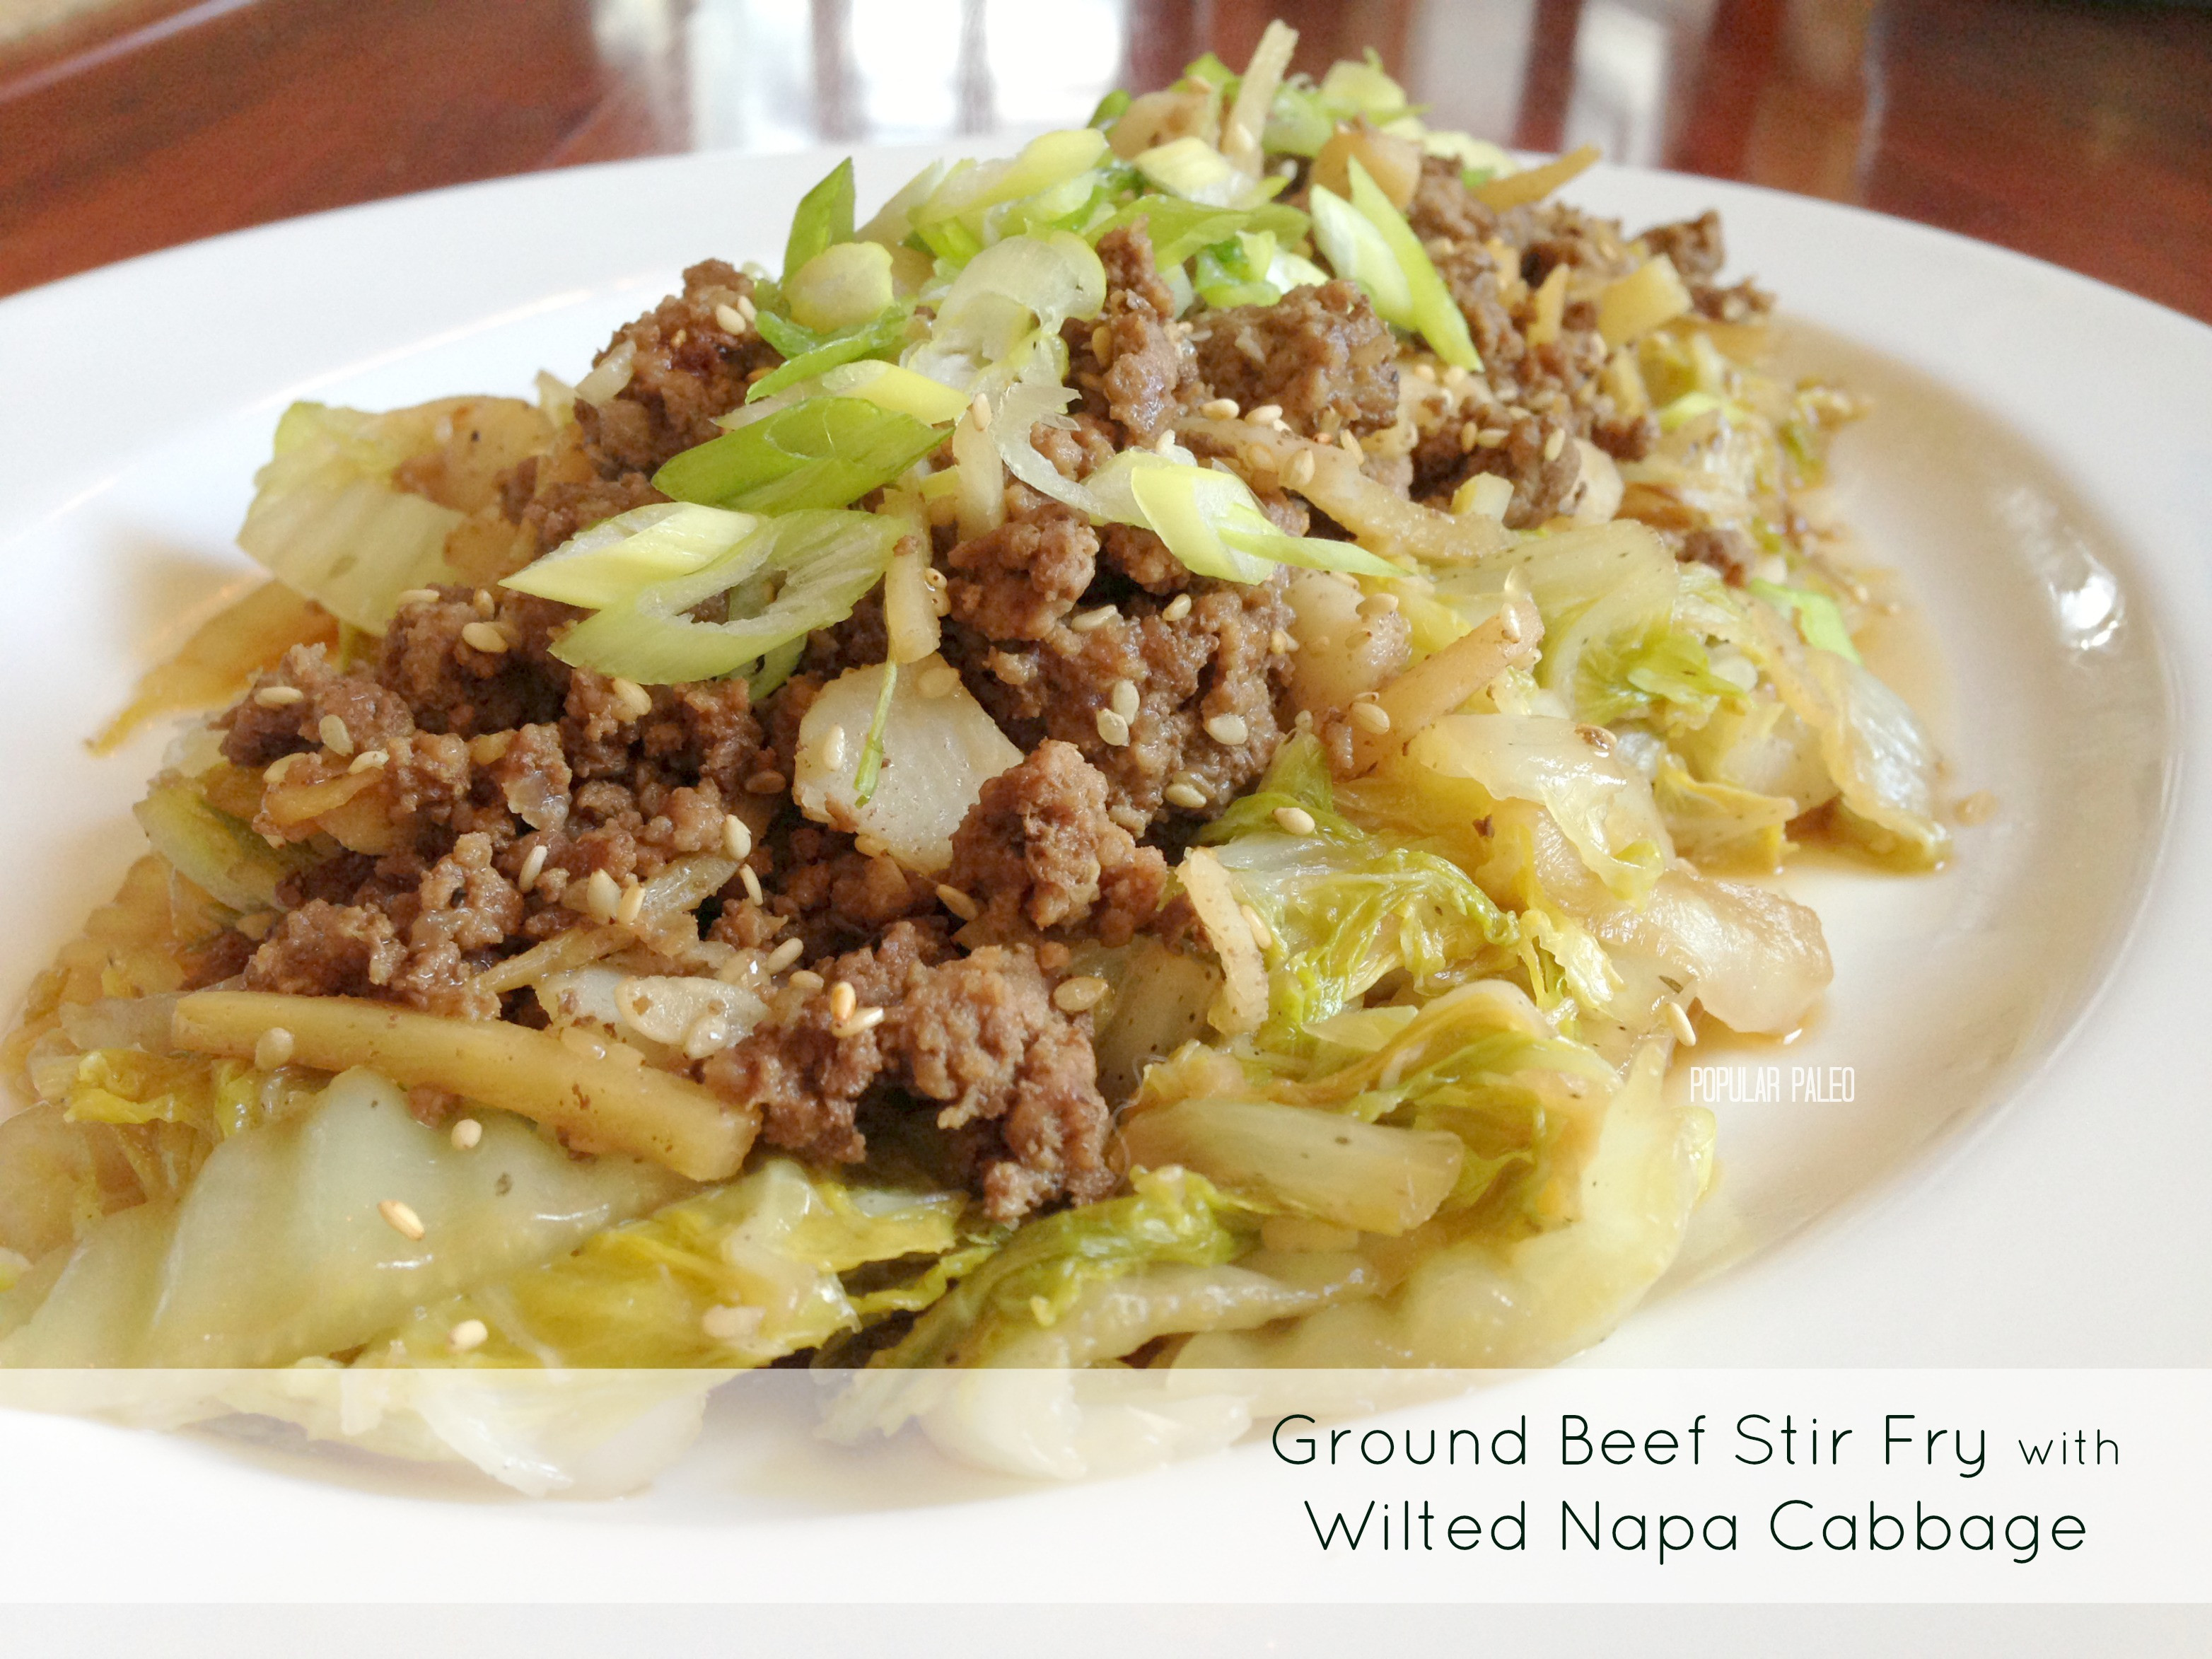 Ground Beef Recipes Healthy Paleo  Paleo Ground Beef Stir Fry with Wilted Napa Cabbage